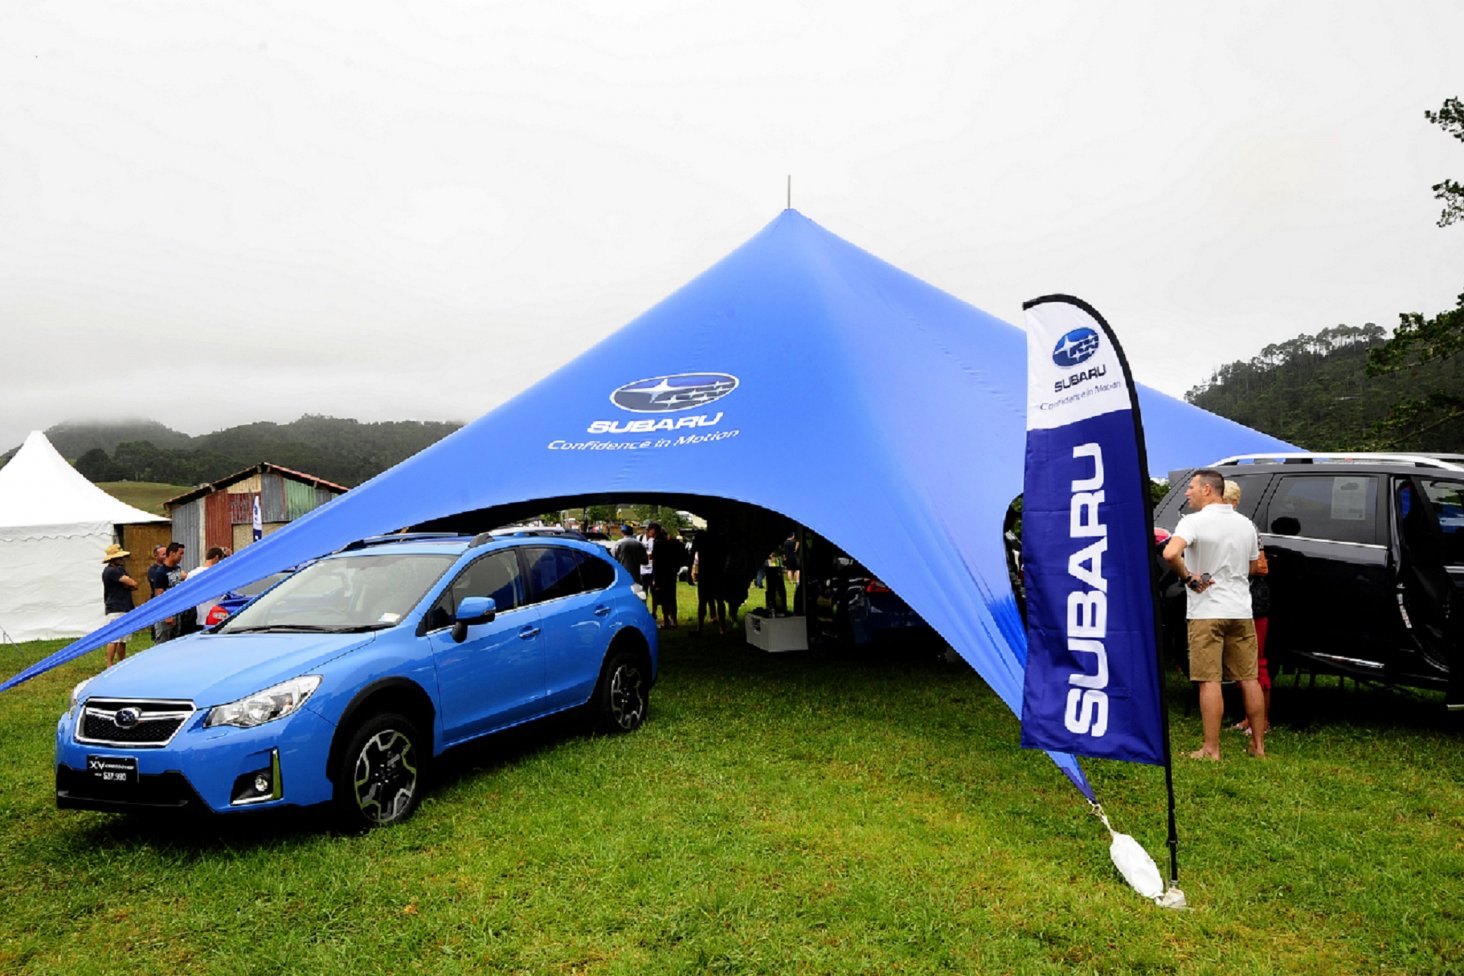 The Subaru tent is the place to see the latest model range and for Subaru drivers to relax in the shade. PHOTO: GEOFF RIDDER